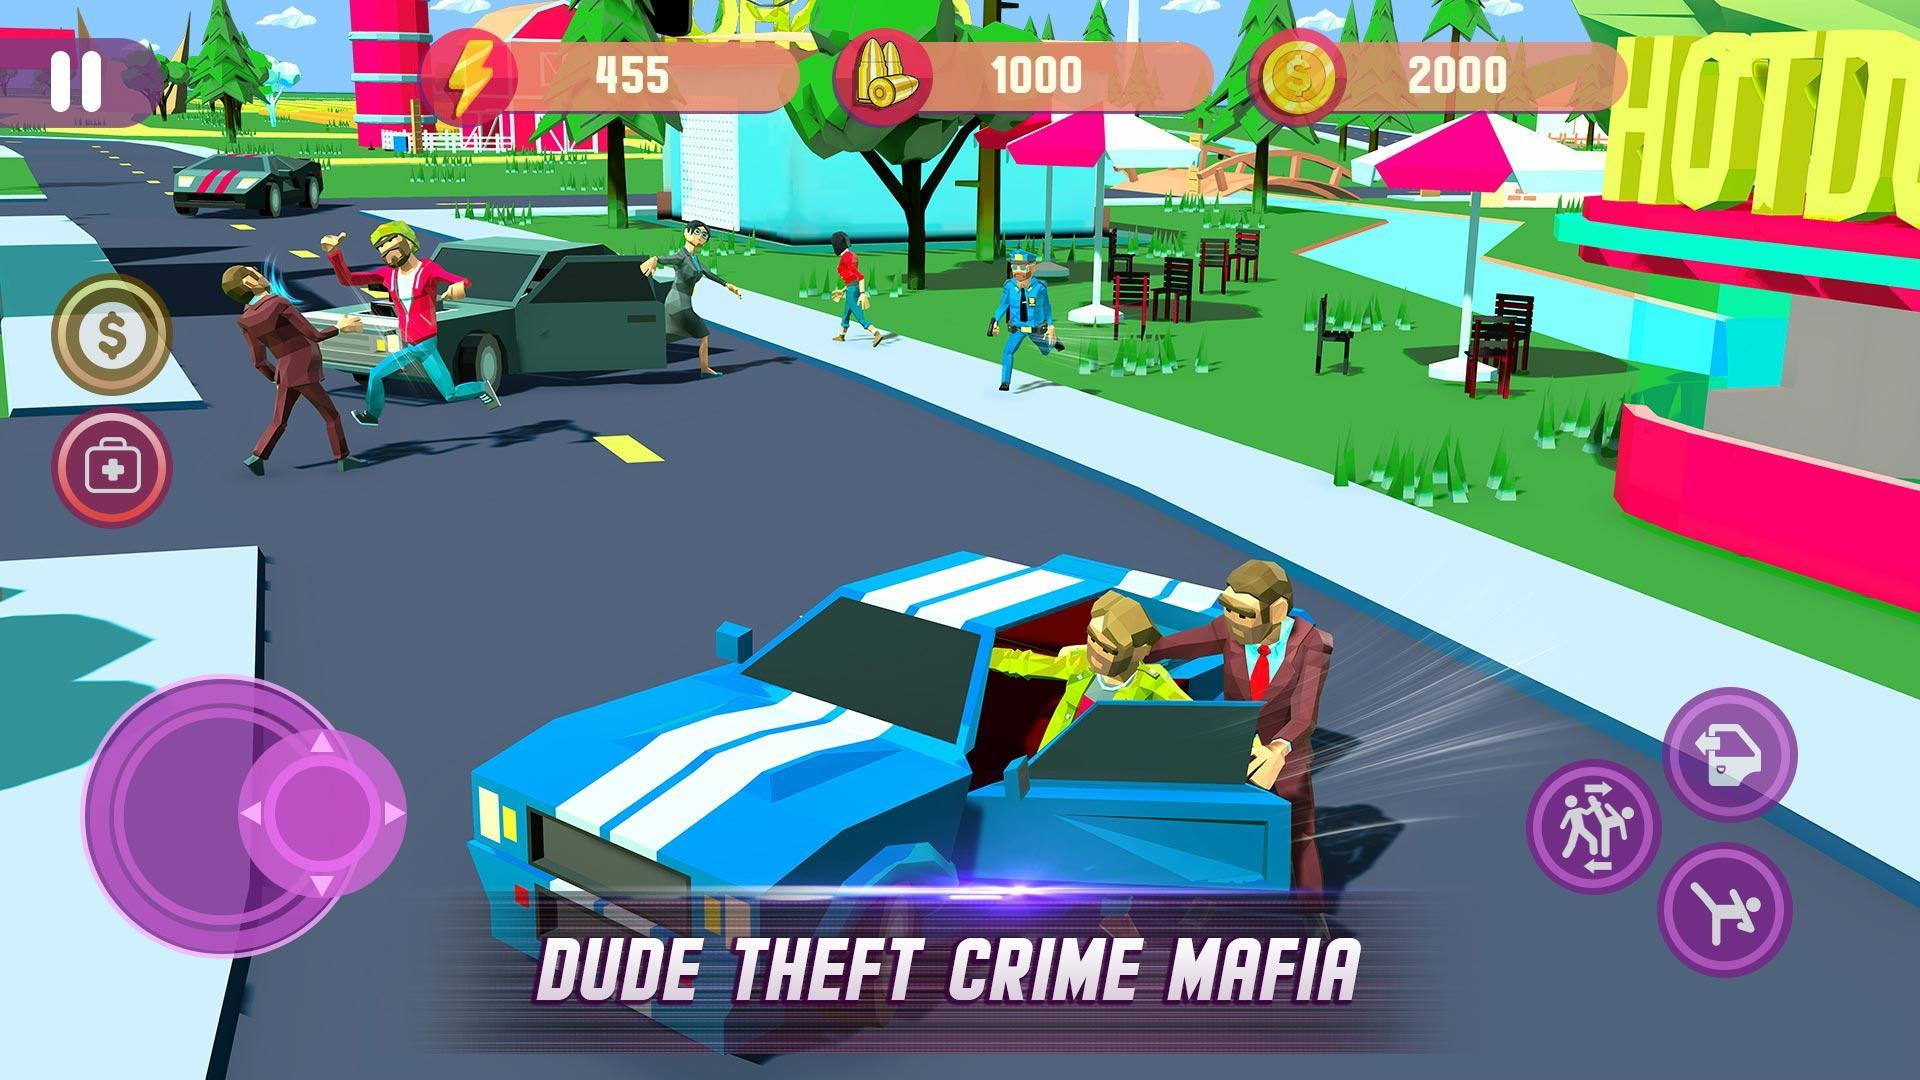 2 screen 1 - Dude Theft Wars Mod Apk V0.87c (Unlimited Money) Download